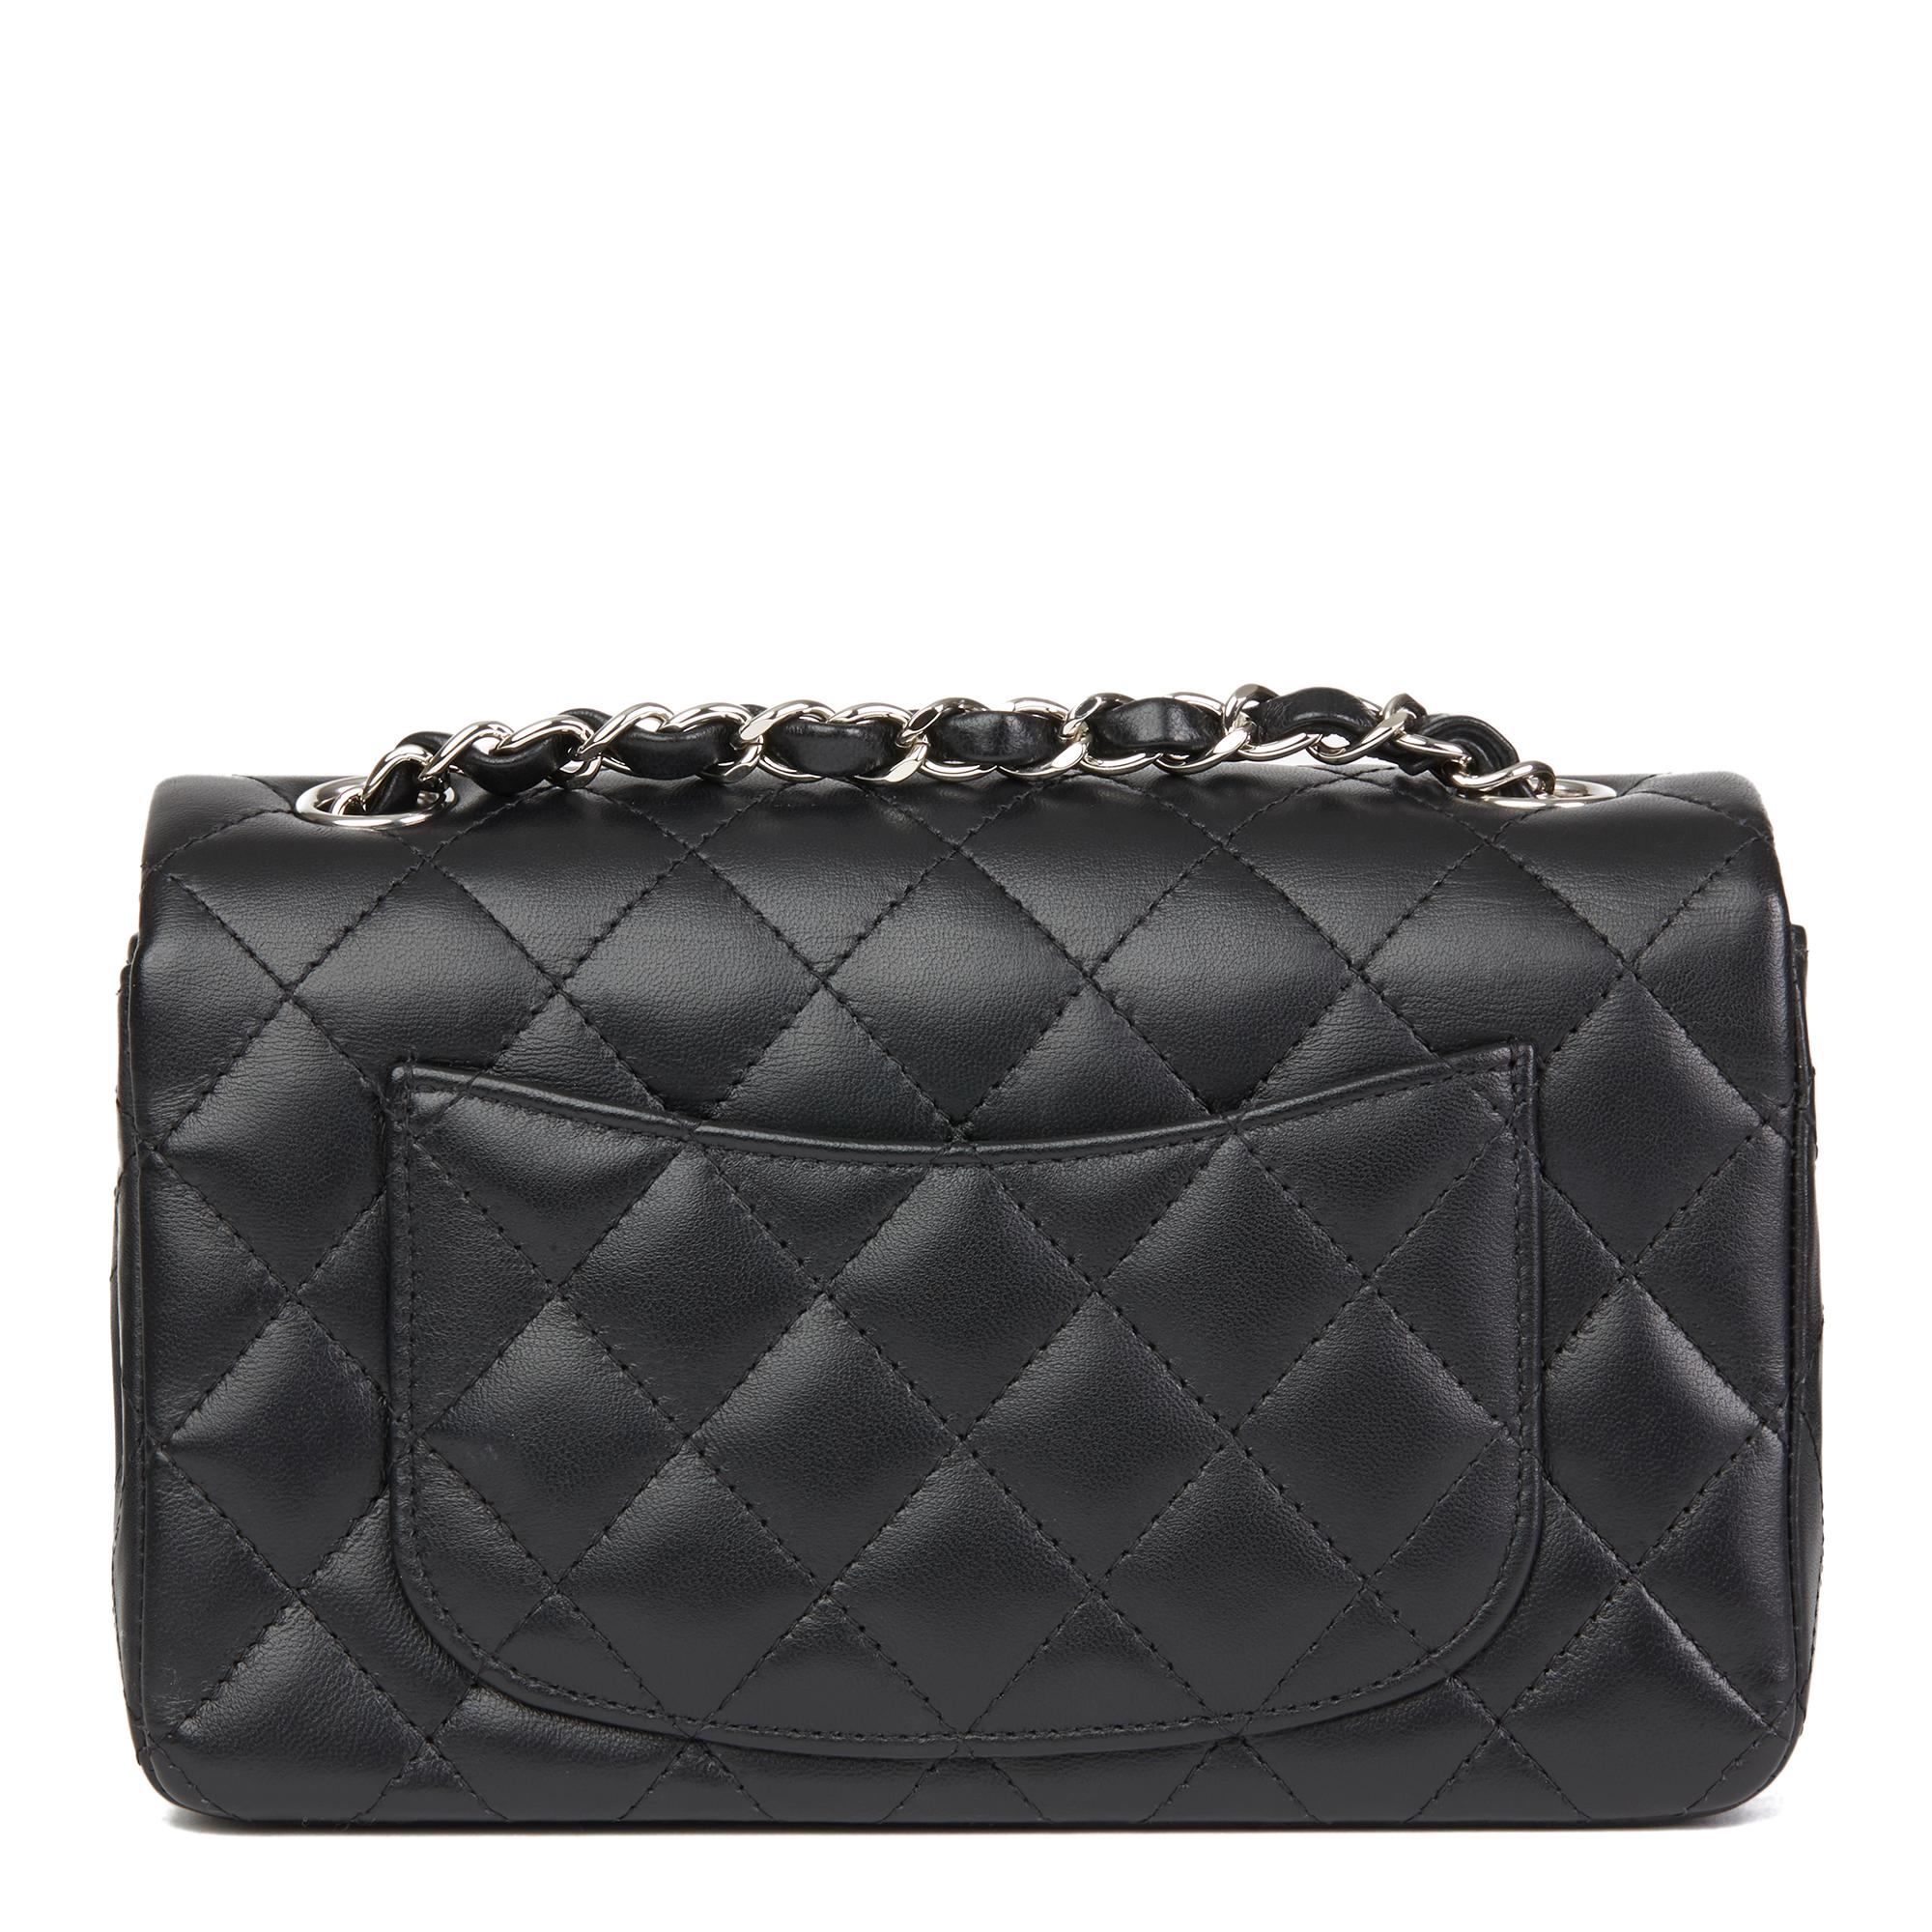 0fa7288be86d 2019CHANEL Caviar Quilted Mini Rectangular Flap Dark Red